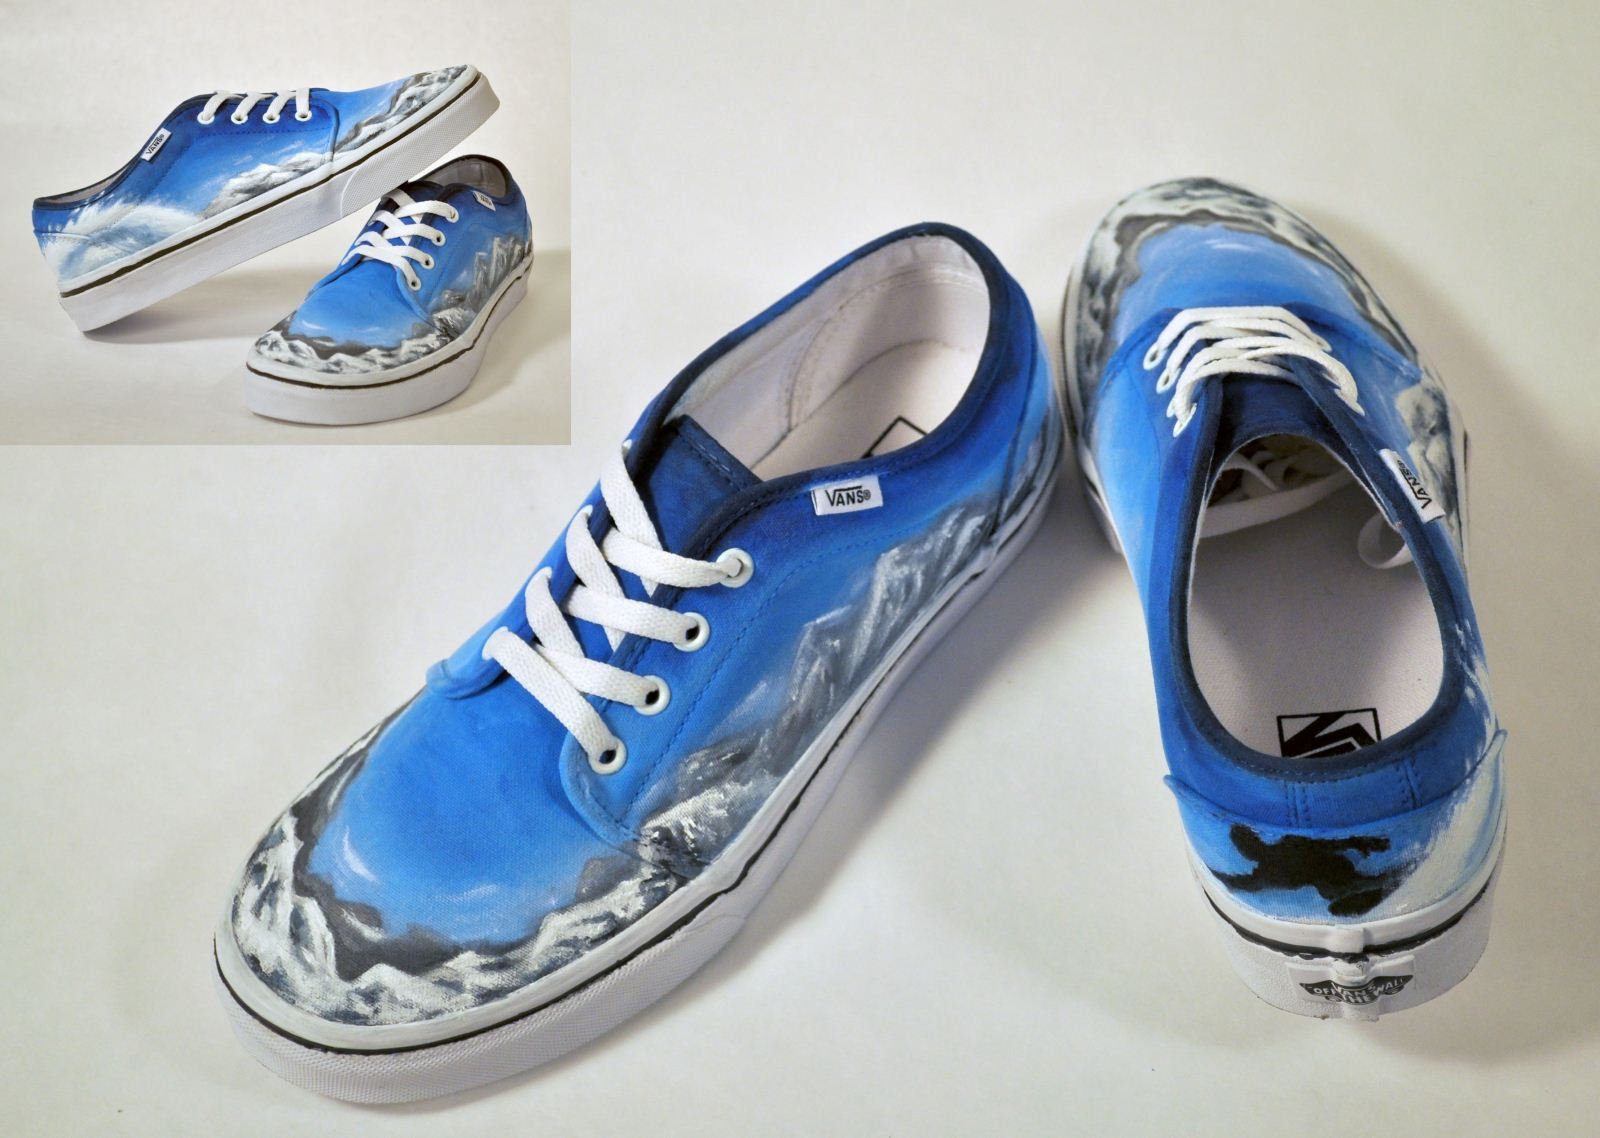 0d2b3aa9ac0f72 VOTE FOR LHS IN VANS ART CONTEST  SCHOOL IN FINAL 50 - Lakewood City ...